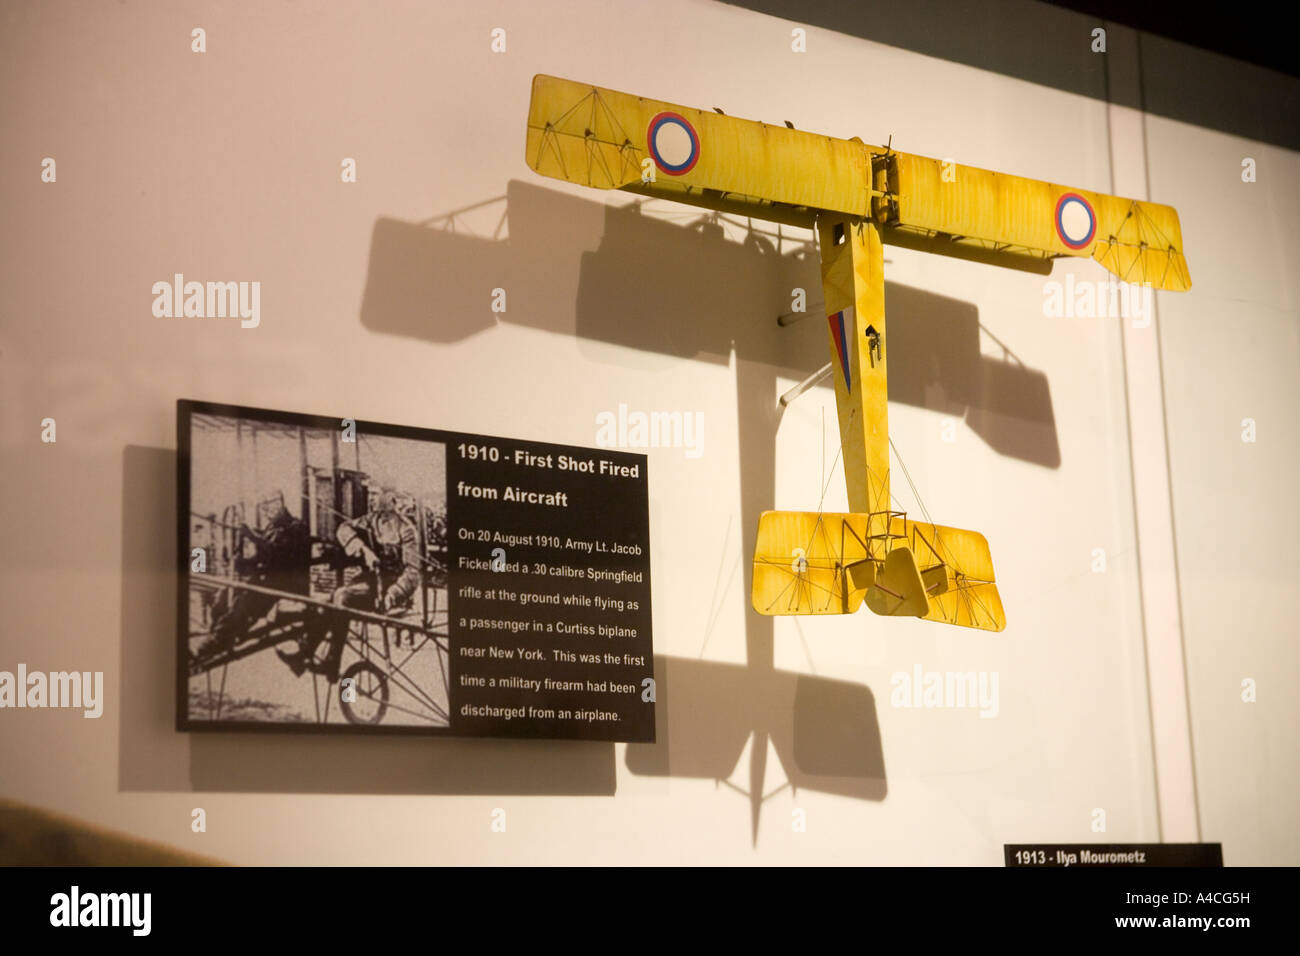 The First Shot Fired from an Aircraft Exhibit Airforce Museum Singapore - Stock Image